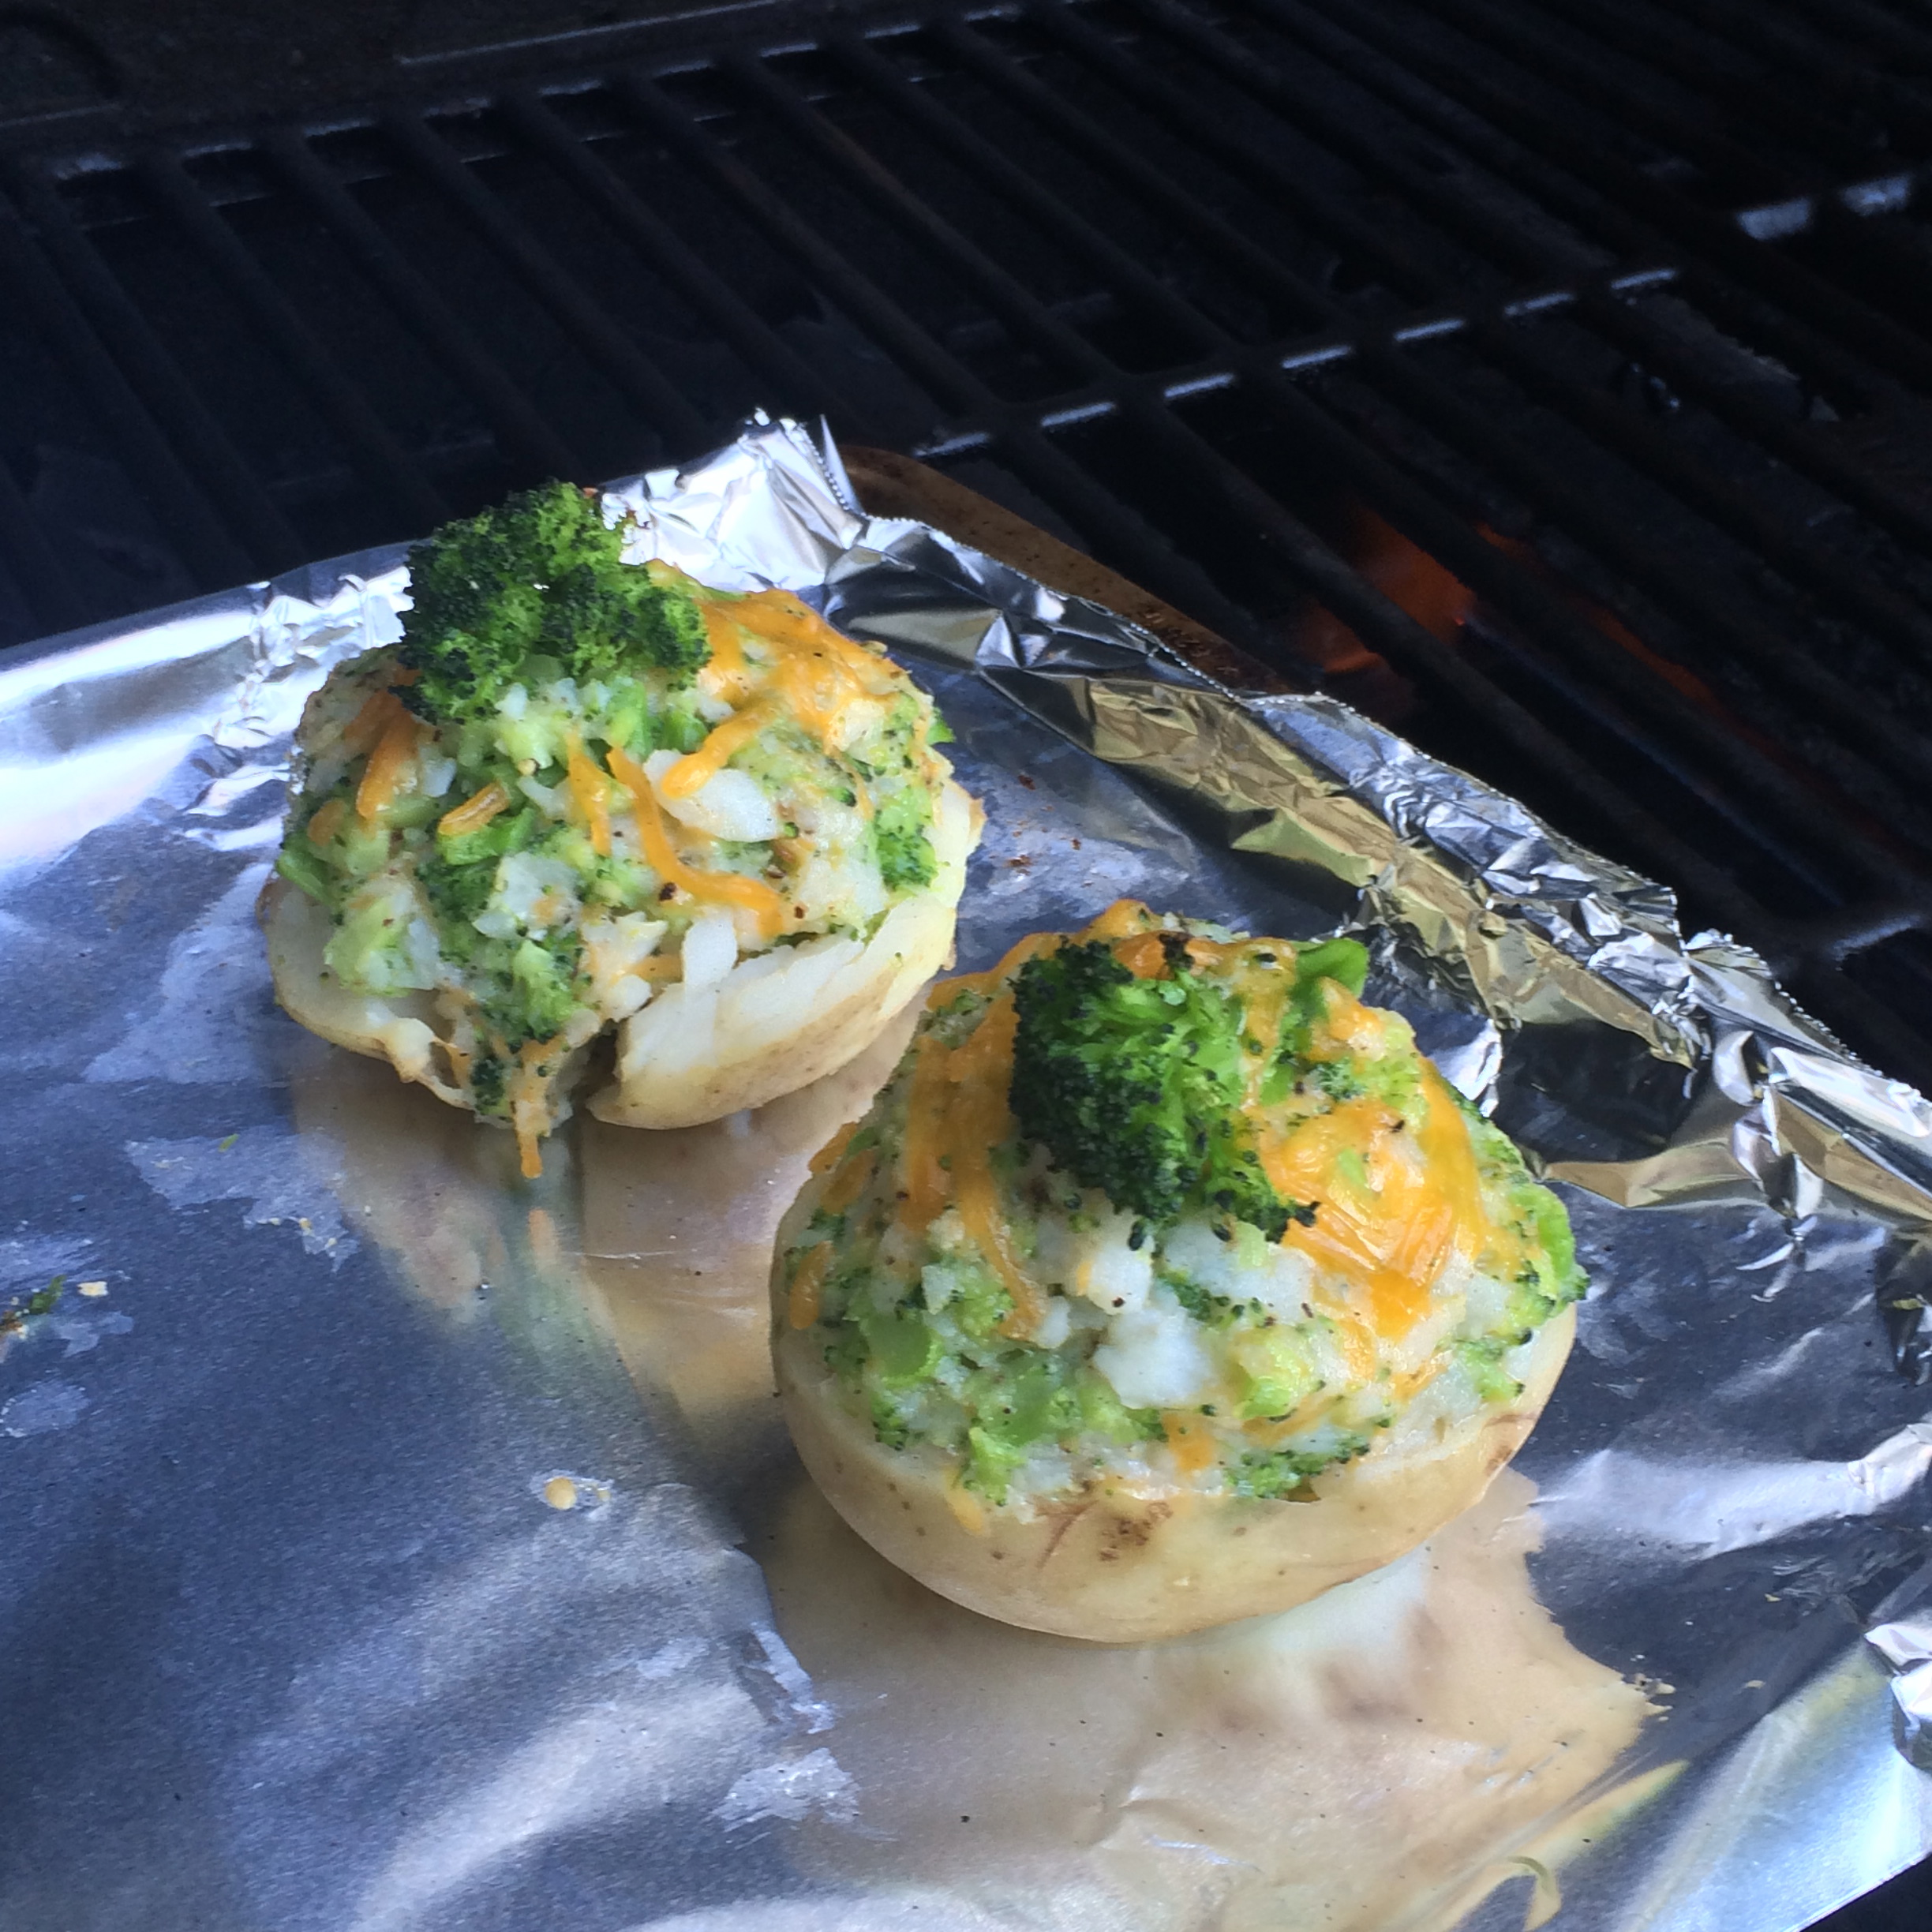 Broccoli and Cheese Stuffed Potatoes